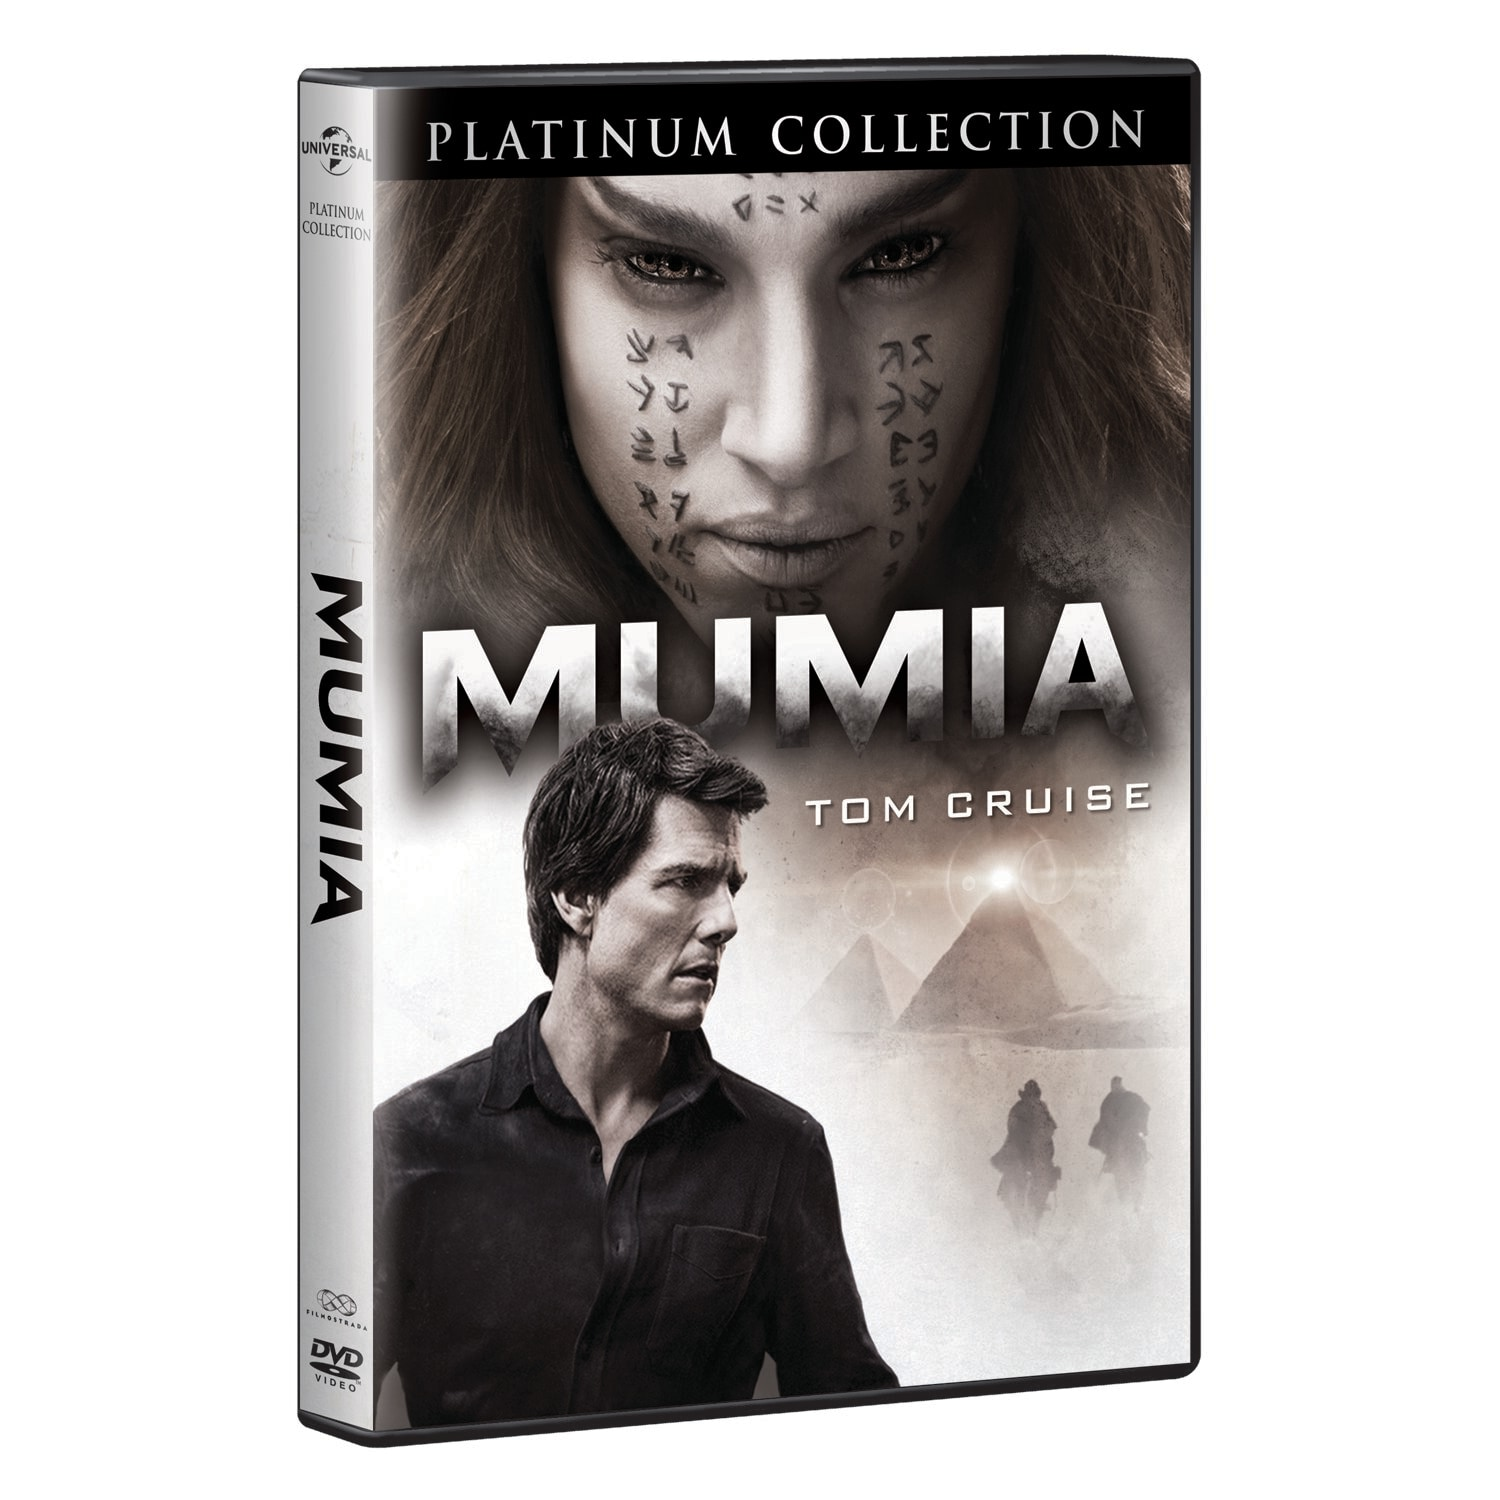 Mumia (DVD) Platinum Collection